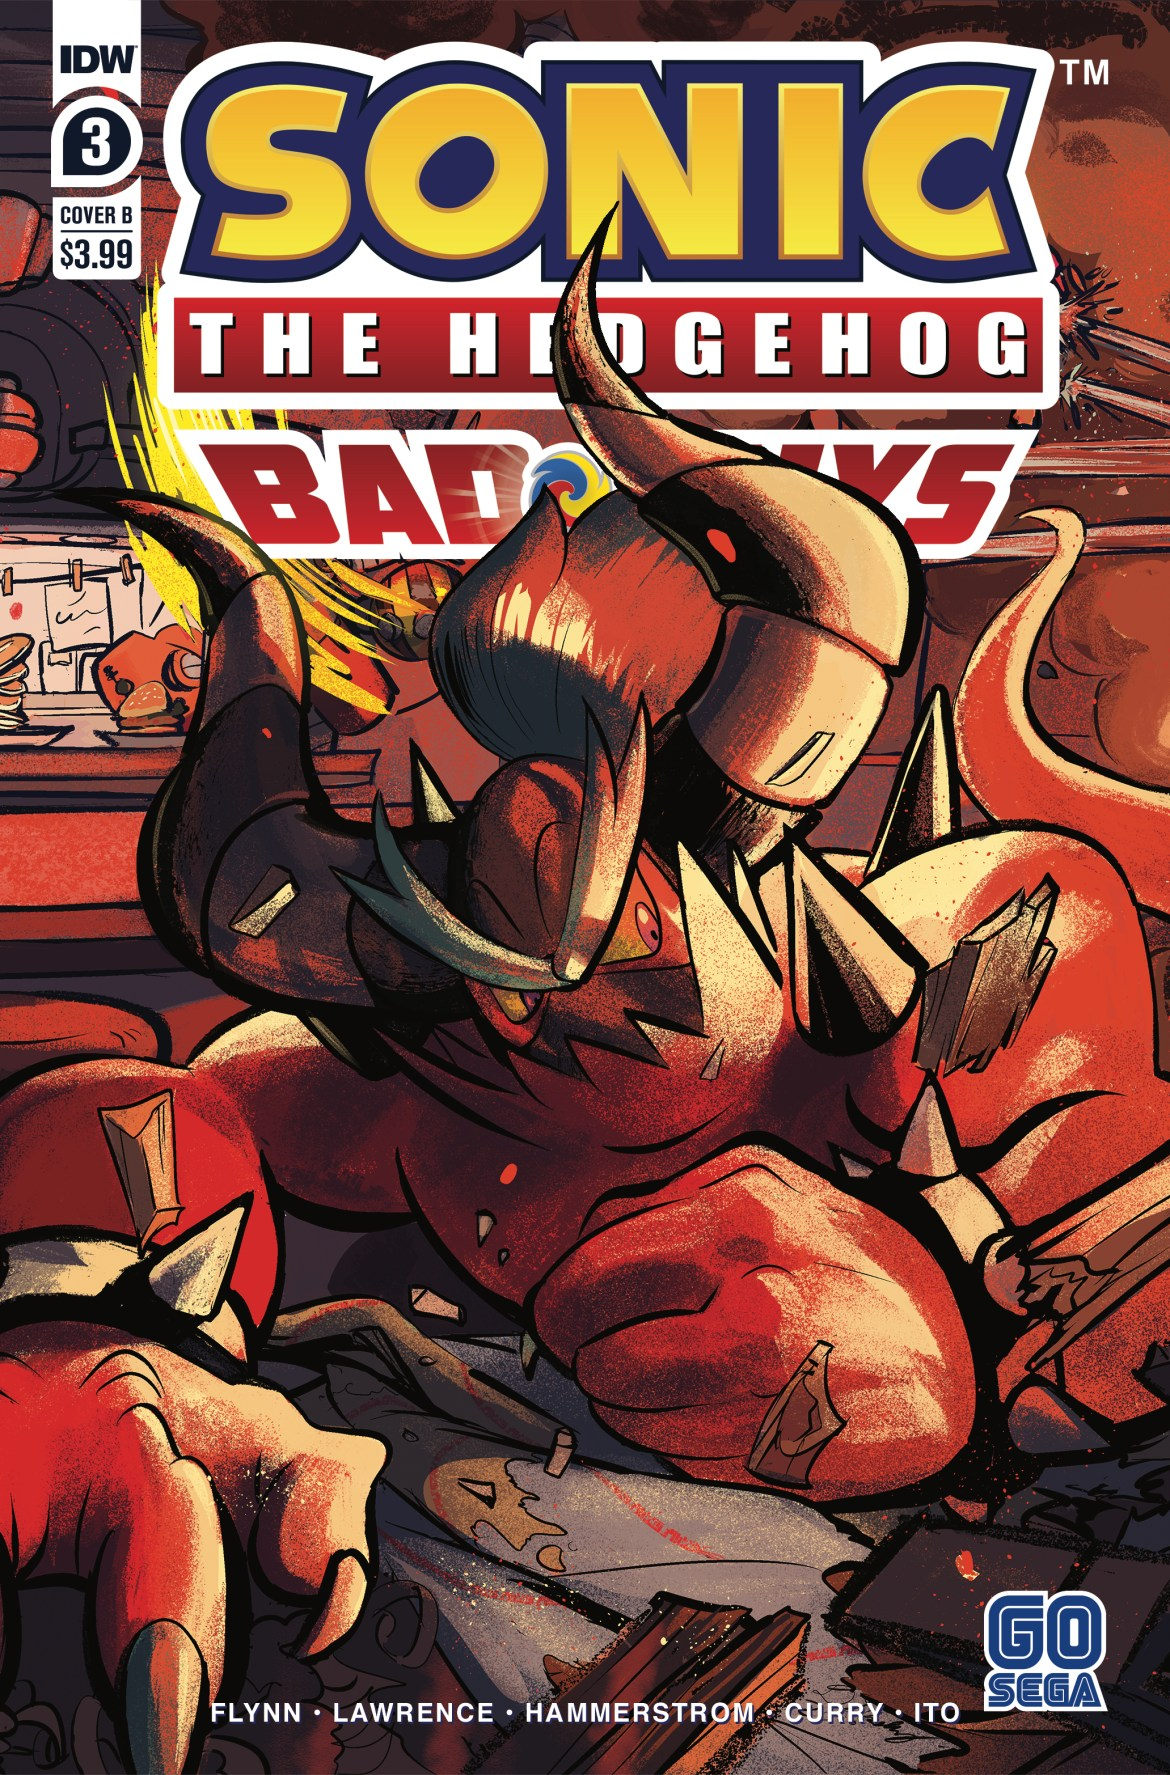 STH-BG03_cvrB ComicList: IDW Publishing New Releases for 11/25/2020